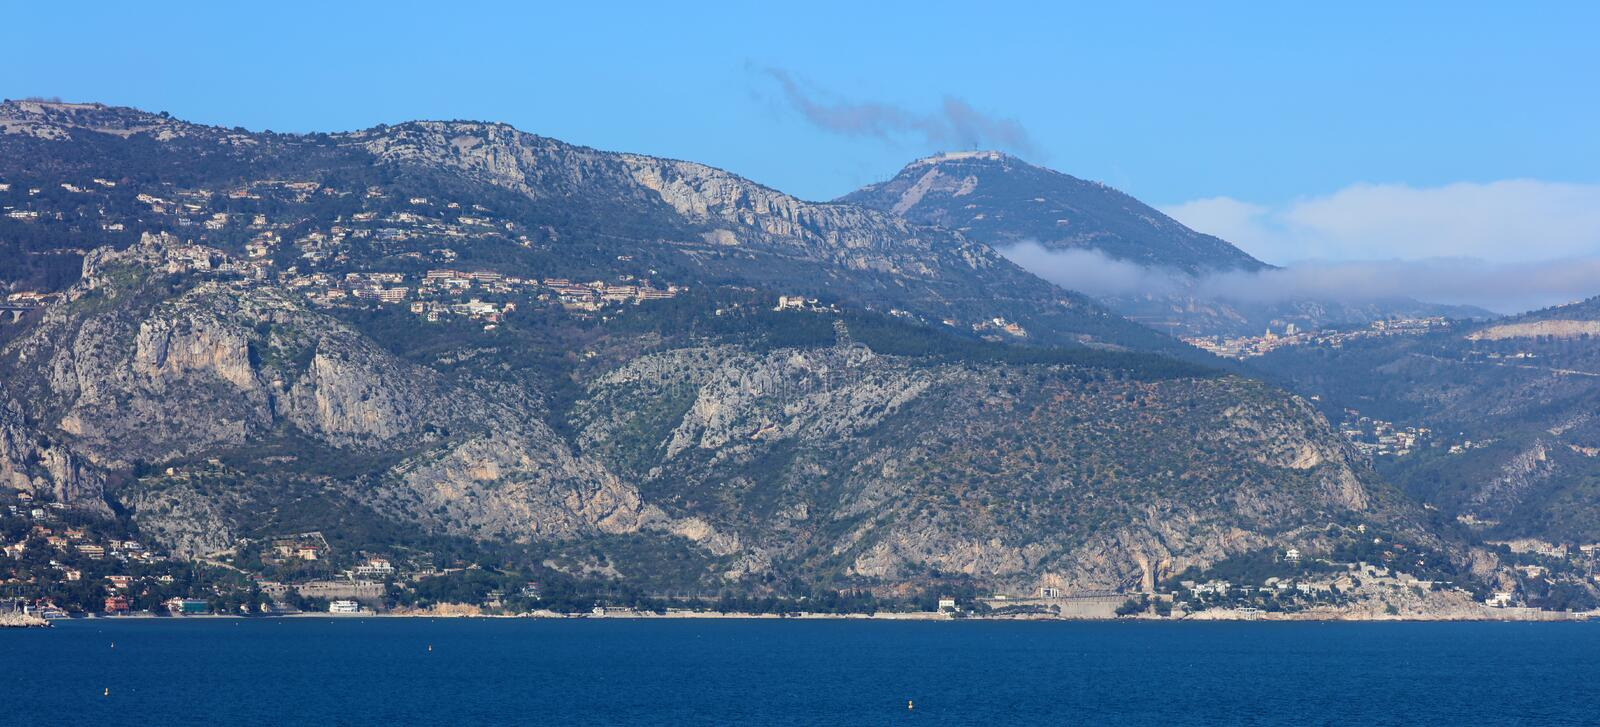 Nice French riviera, mediterranean coast, Eze, Saint-Tropez, Cannes and Monaco. Blue water and luxury yachts. French riviera, Côte d`Azur, mediterranean royalty free stock images